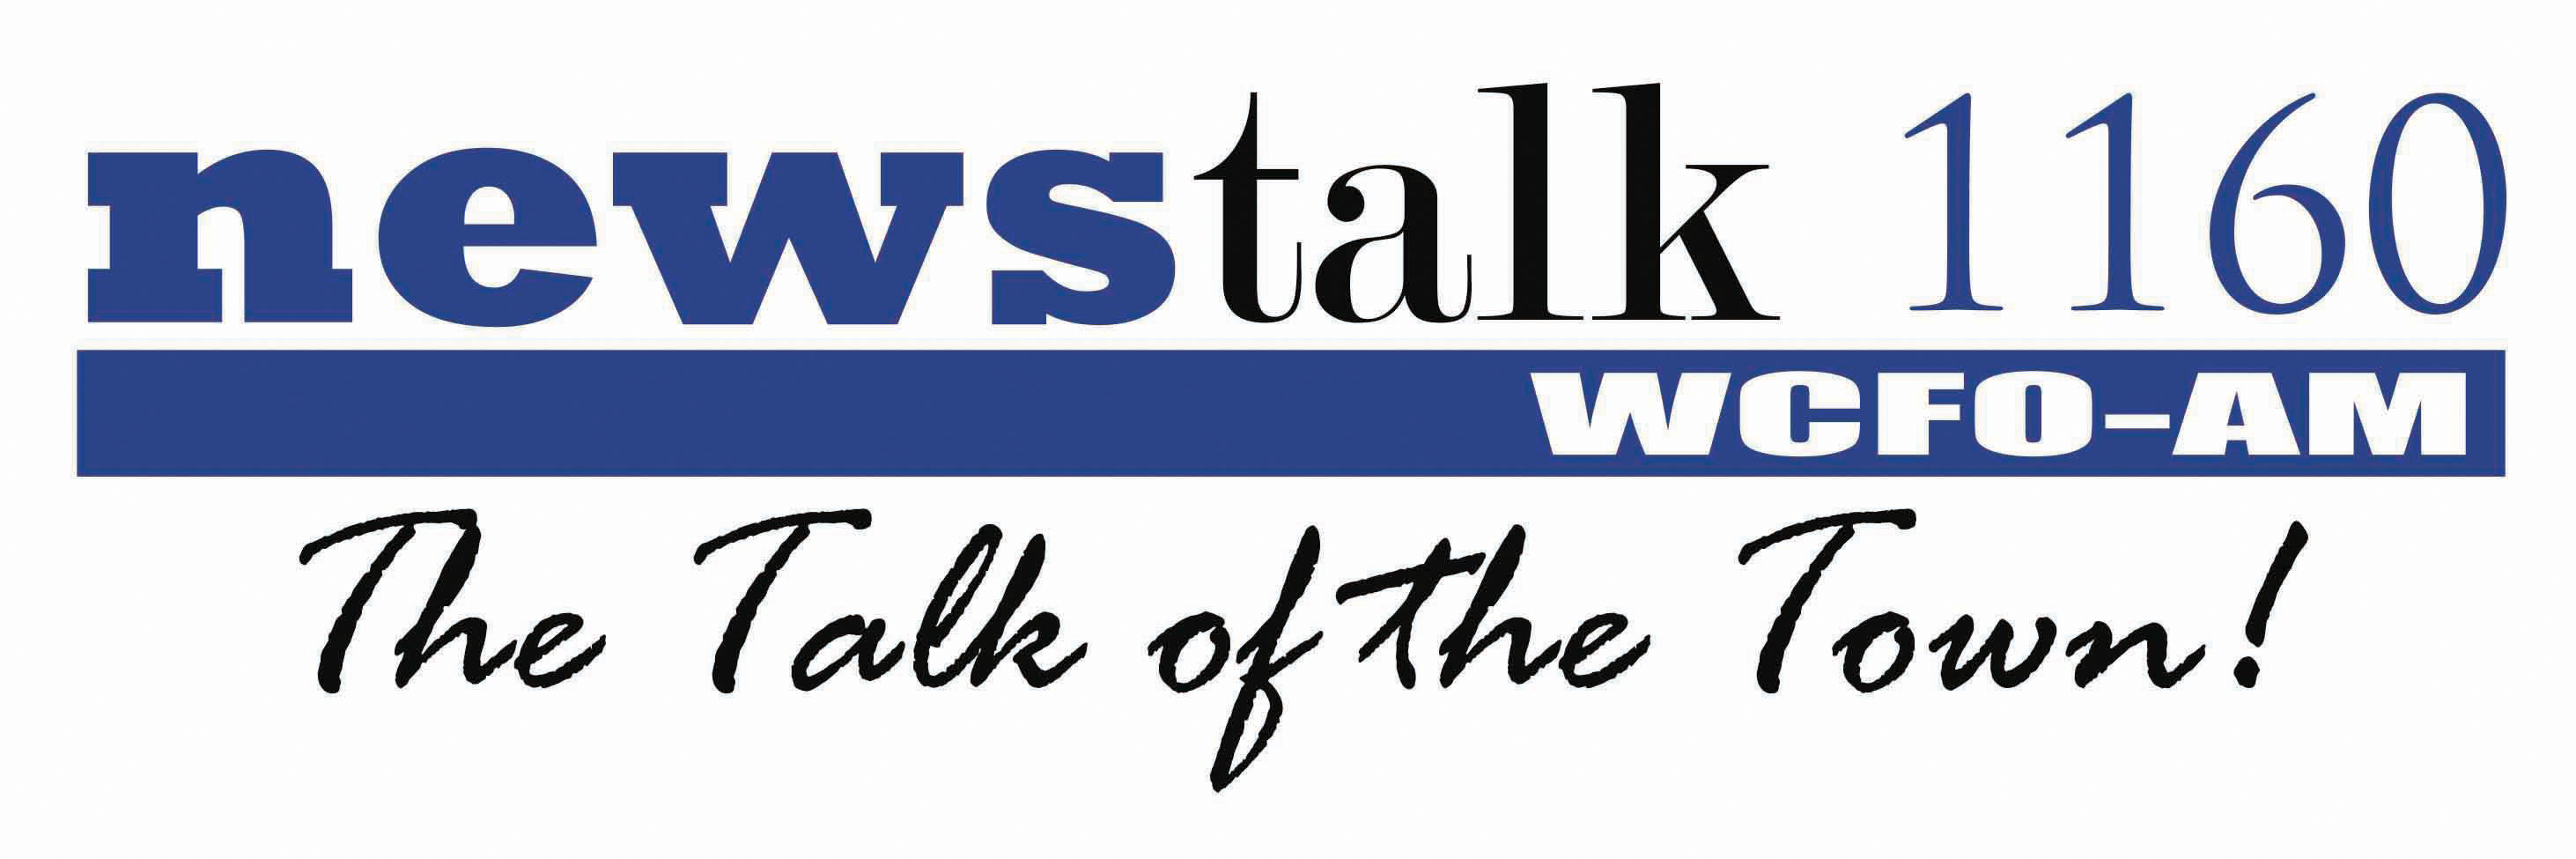 Newstalk 1160 The Talk of the Town - WCFO AM